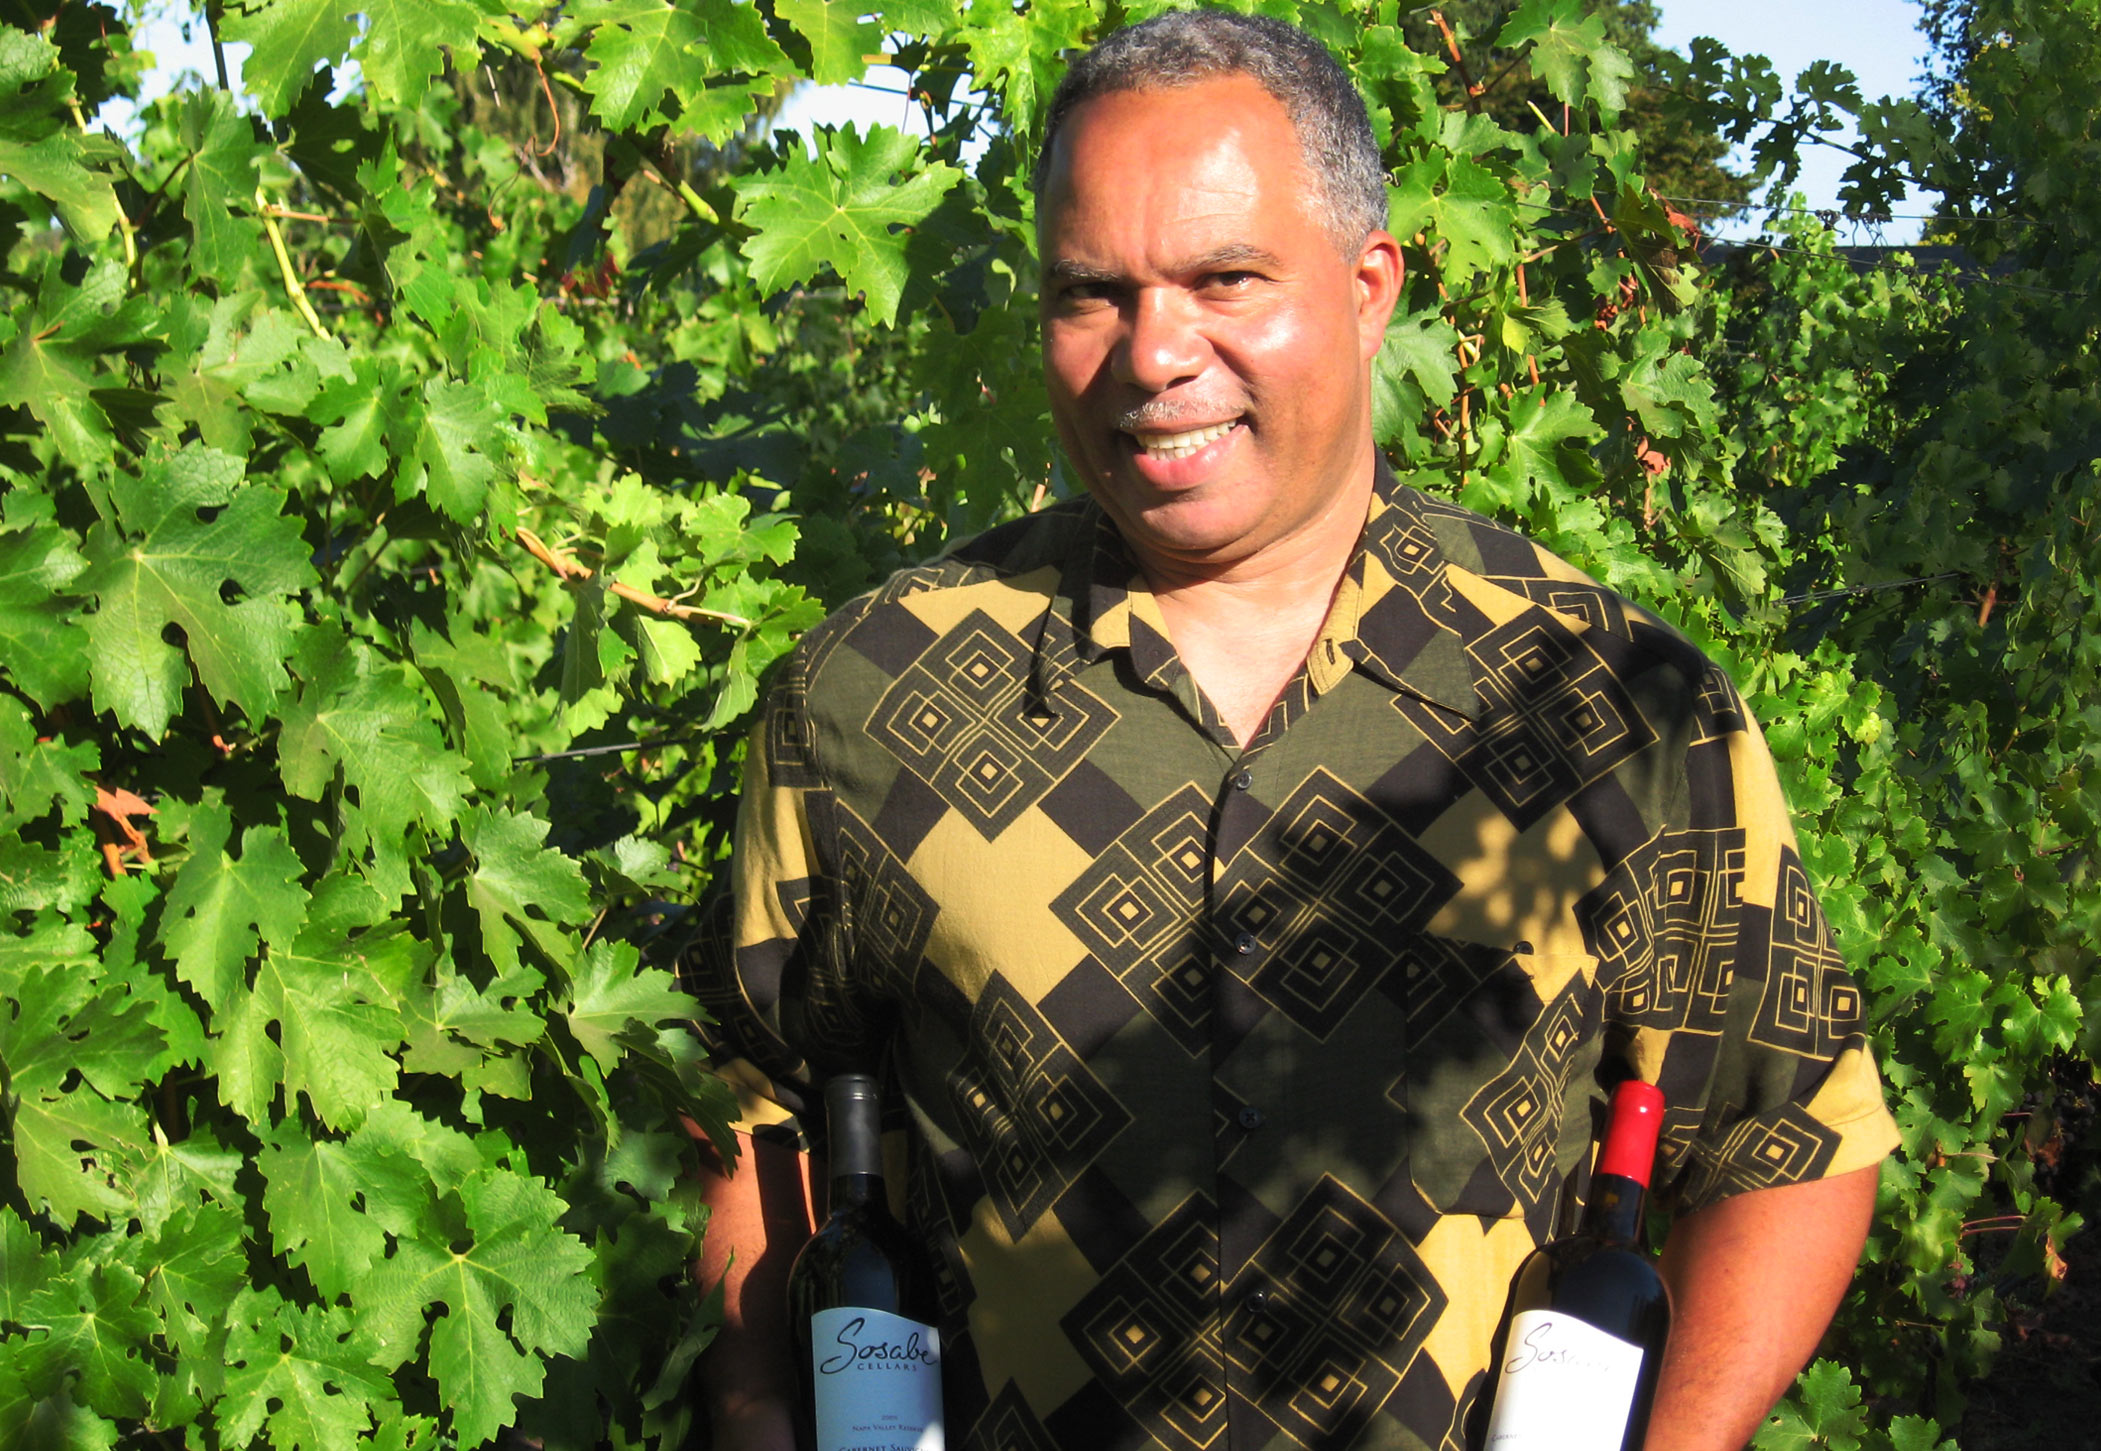 Nuias DePina of Sosabe Cellars